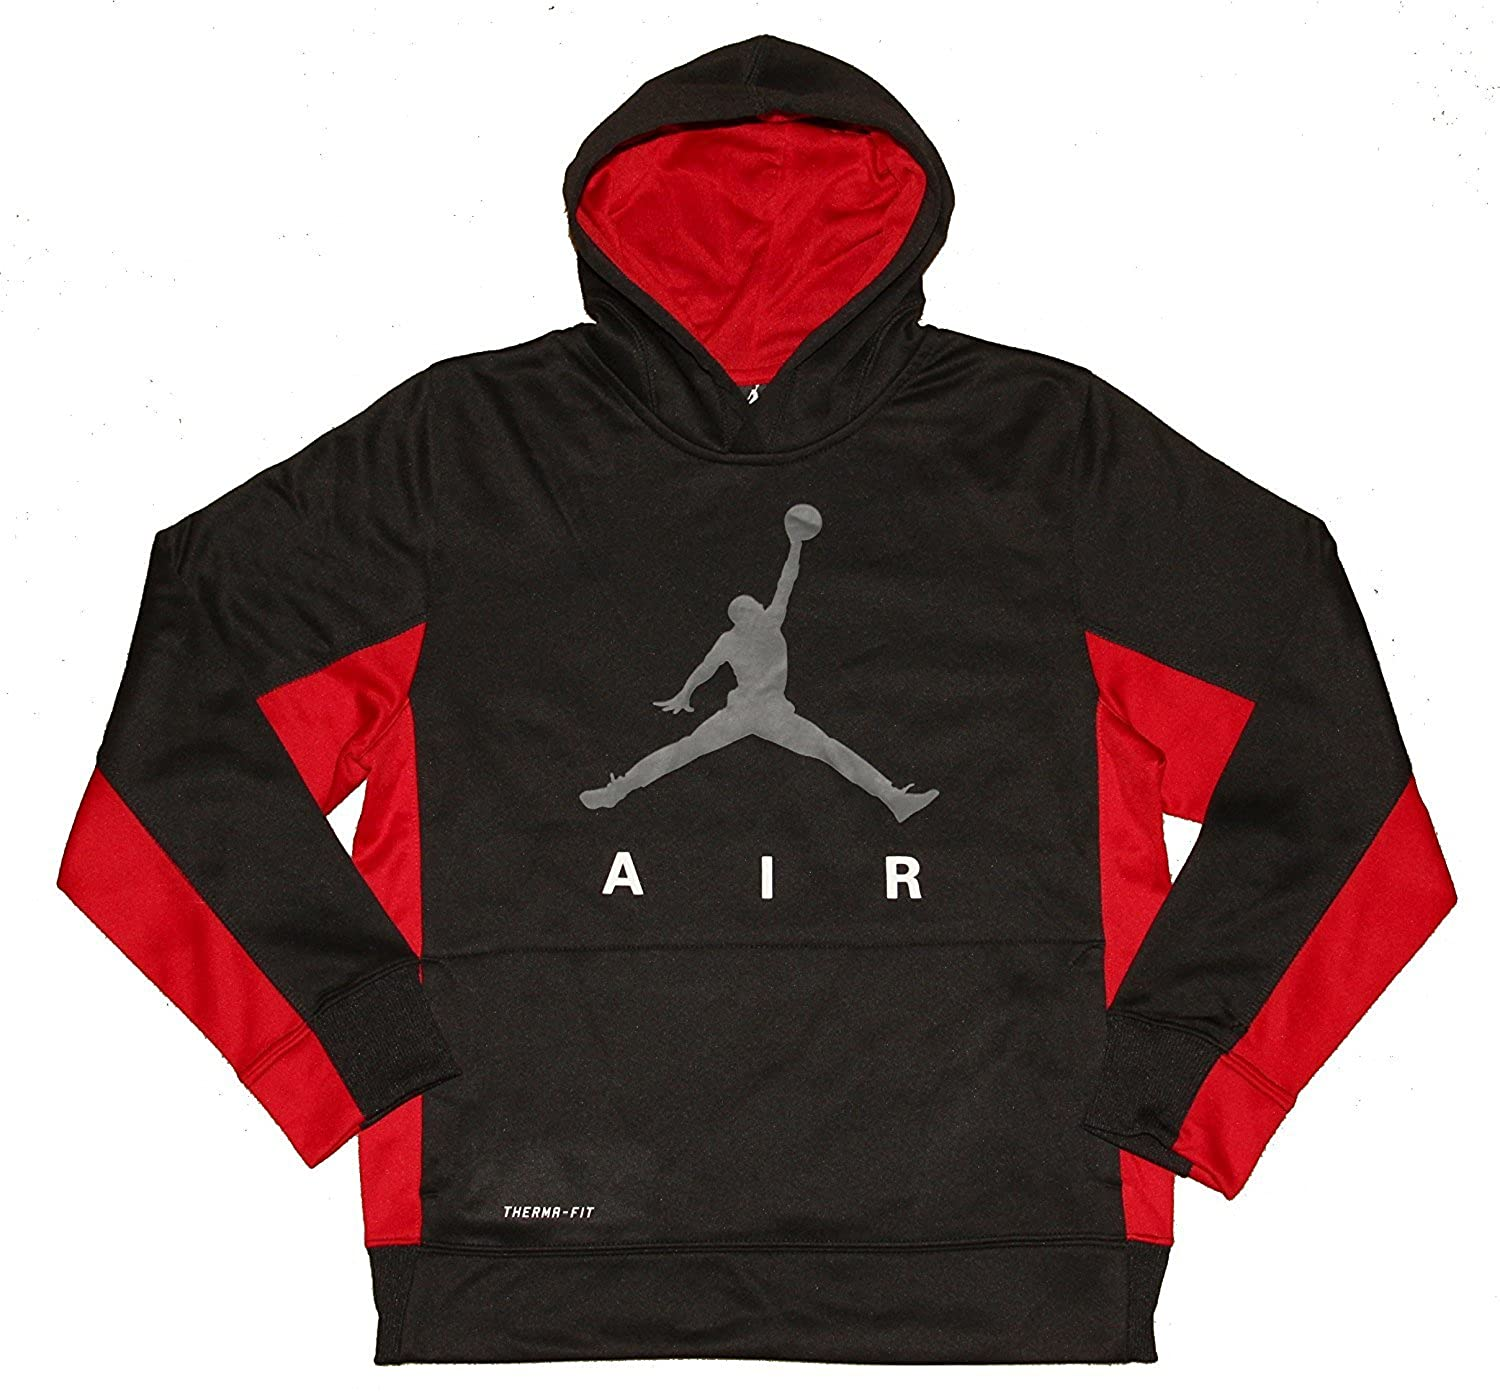 87dbeb3ac39c Amazon.com  Air Jordan Boys Therma-Fit Pullover Hoodie Black Gym Red Size  7  Sports   Outdoors